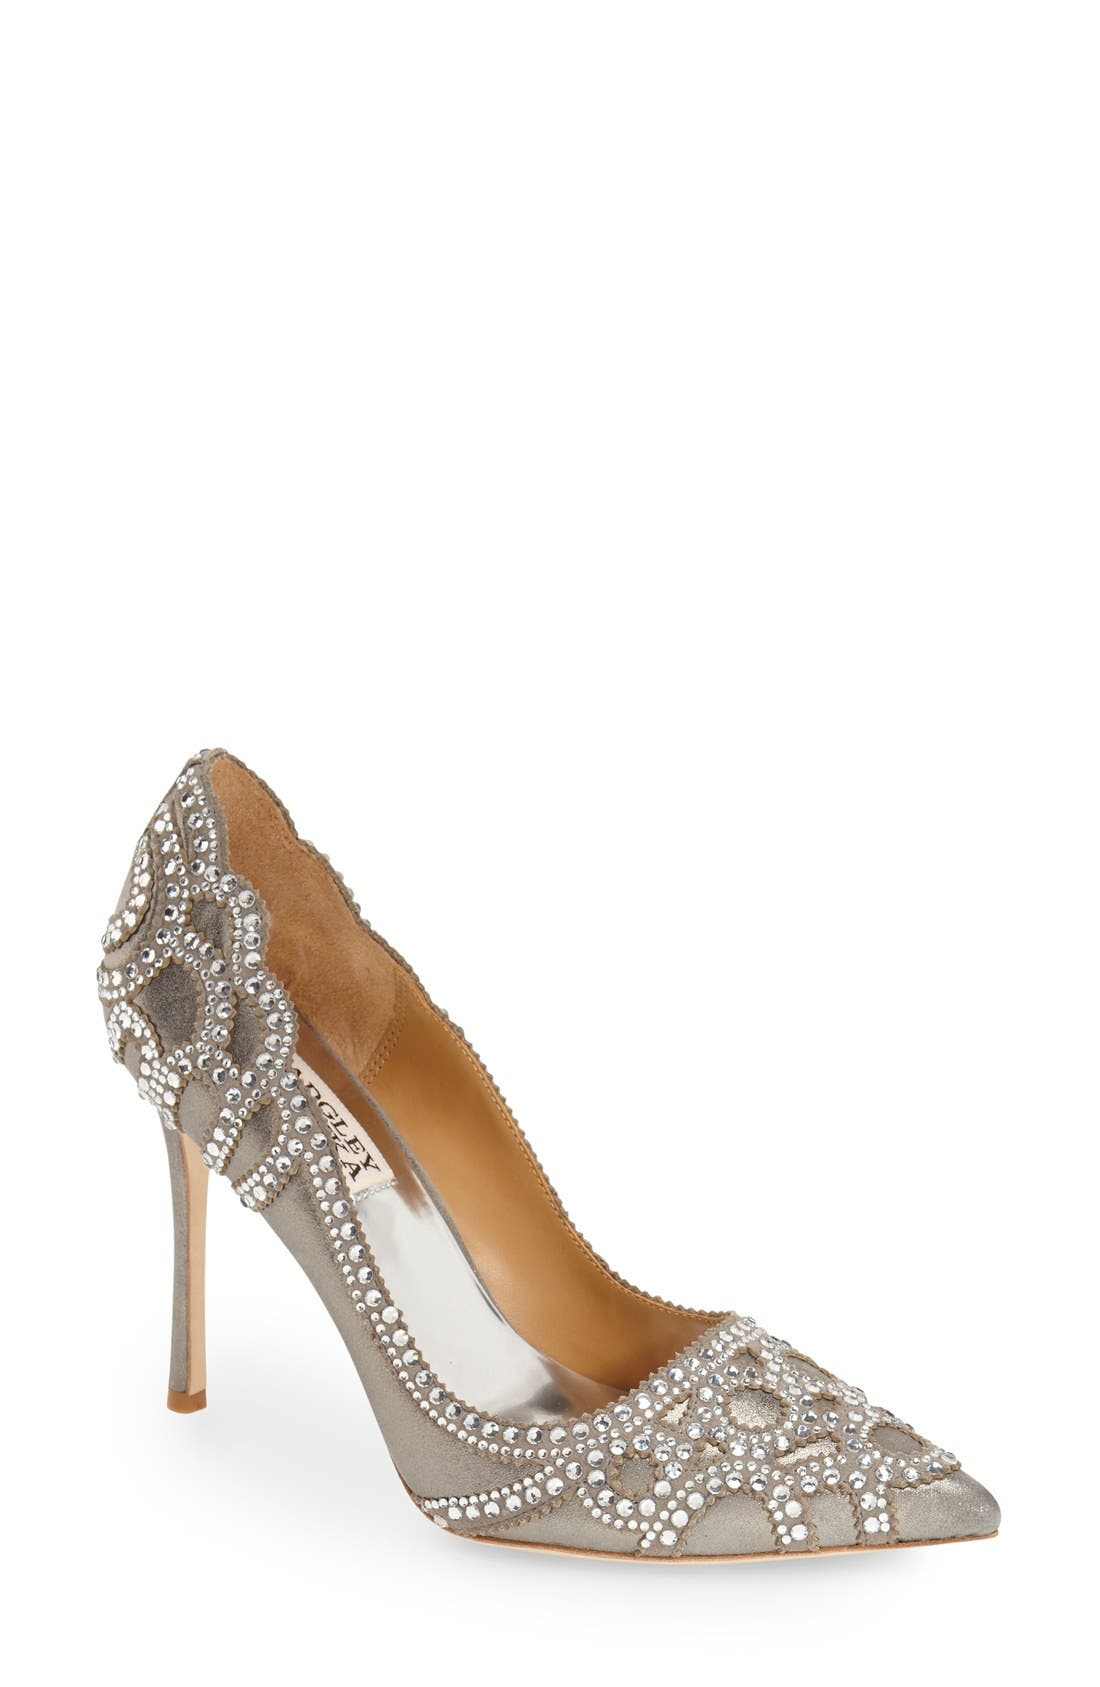 Badgley Mischka 'Rouge II' Crystal Pointy Toe Pump,                         Main,                         color, 040